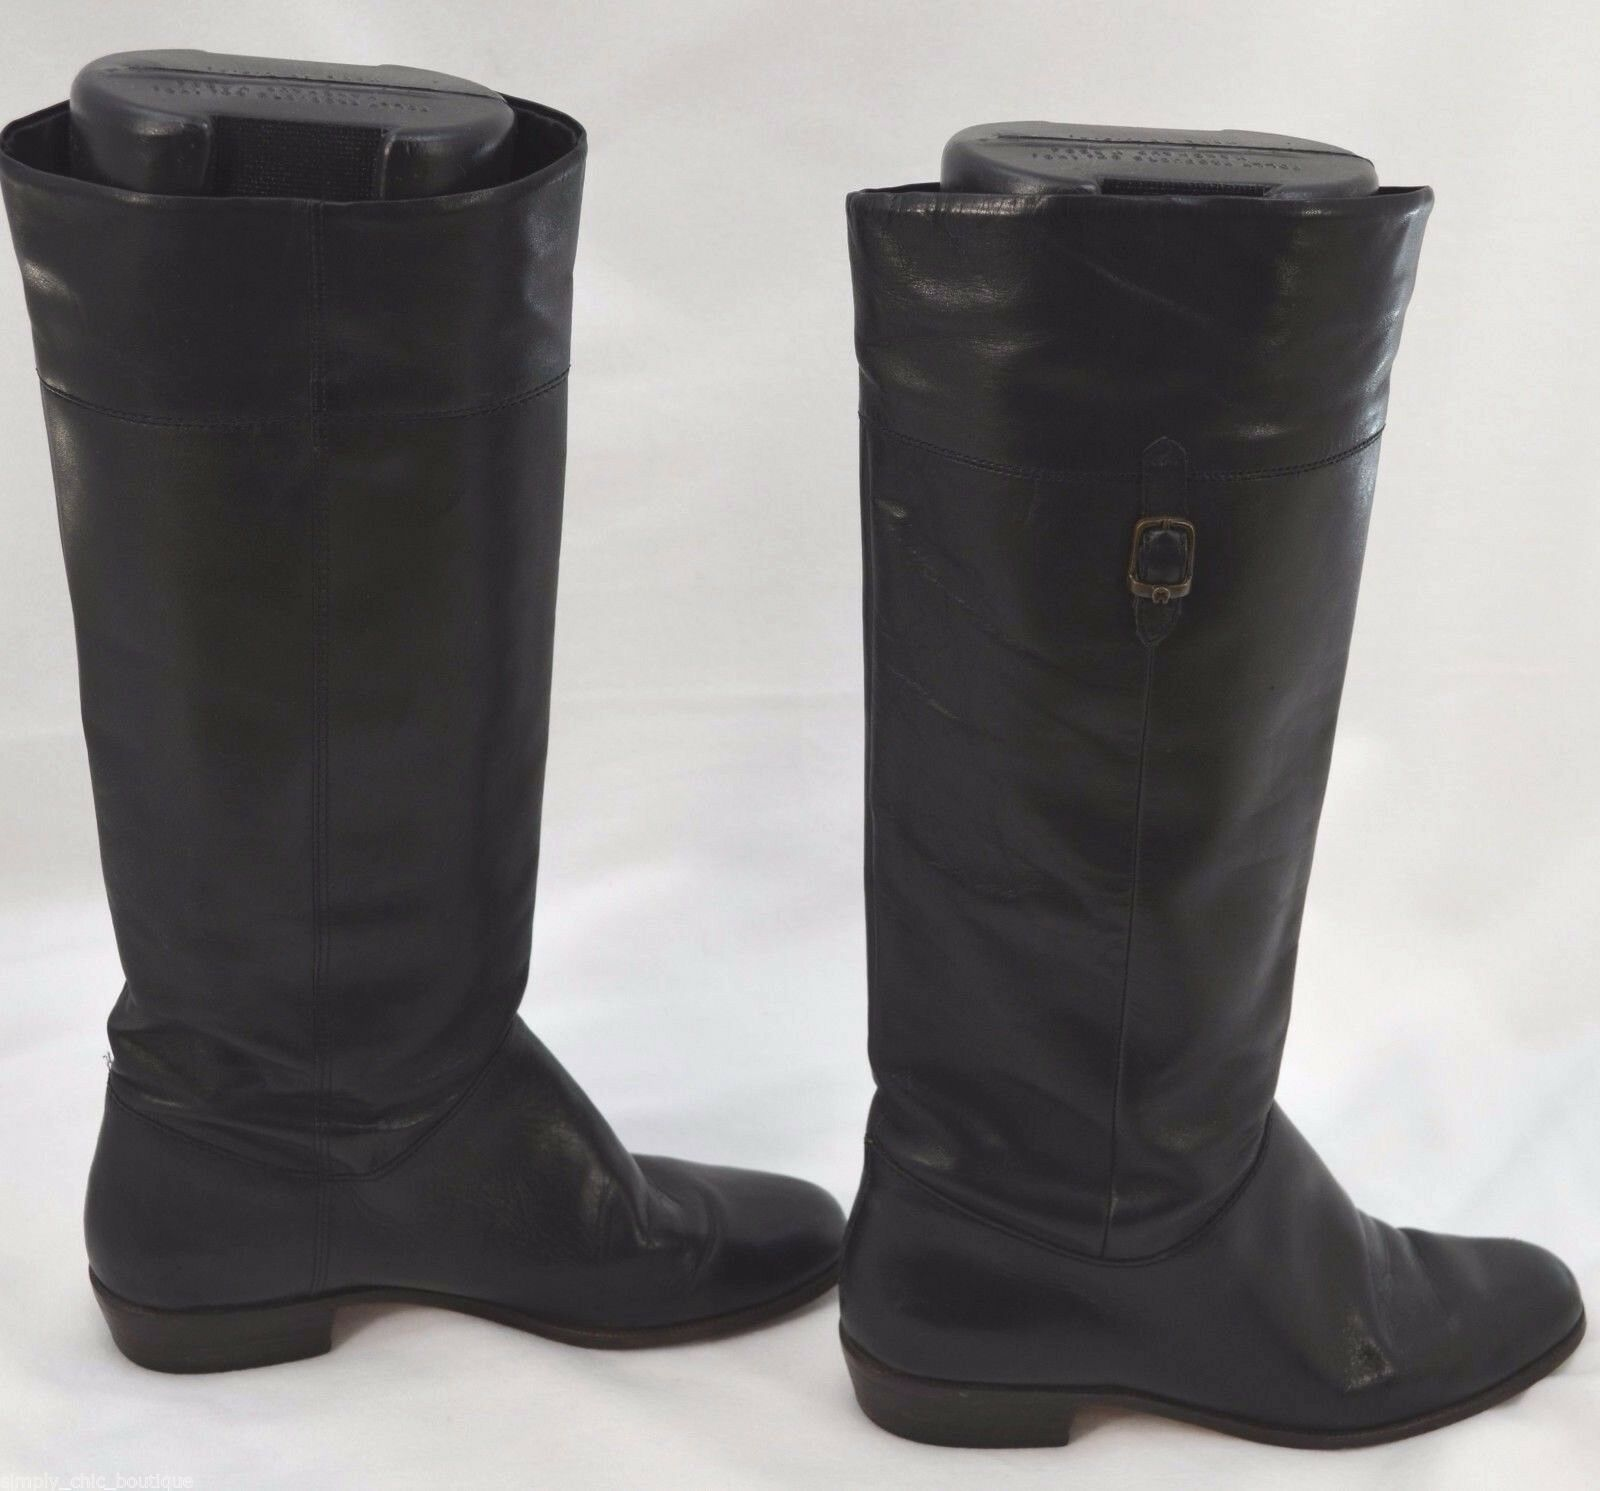 Etienne Aigner Boot Black Leather horse riding Heel KNEE fashion fashion fashion BOOTS 7.5 N VTG be0808